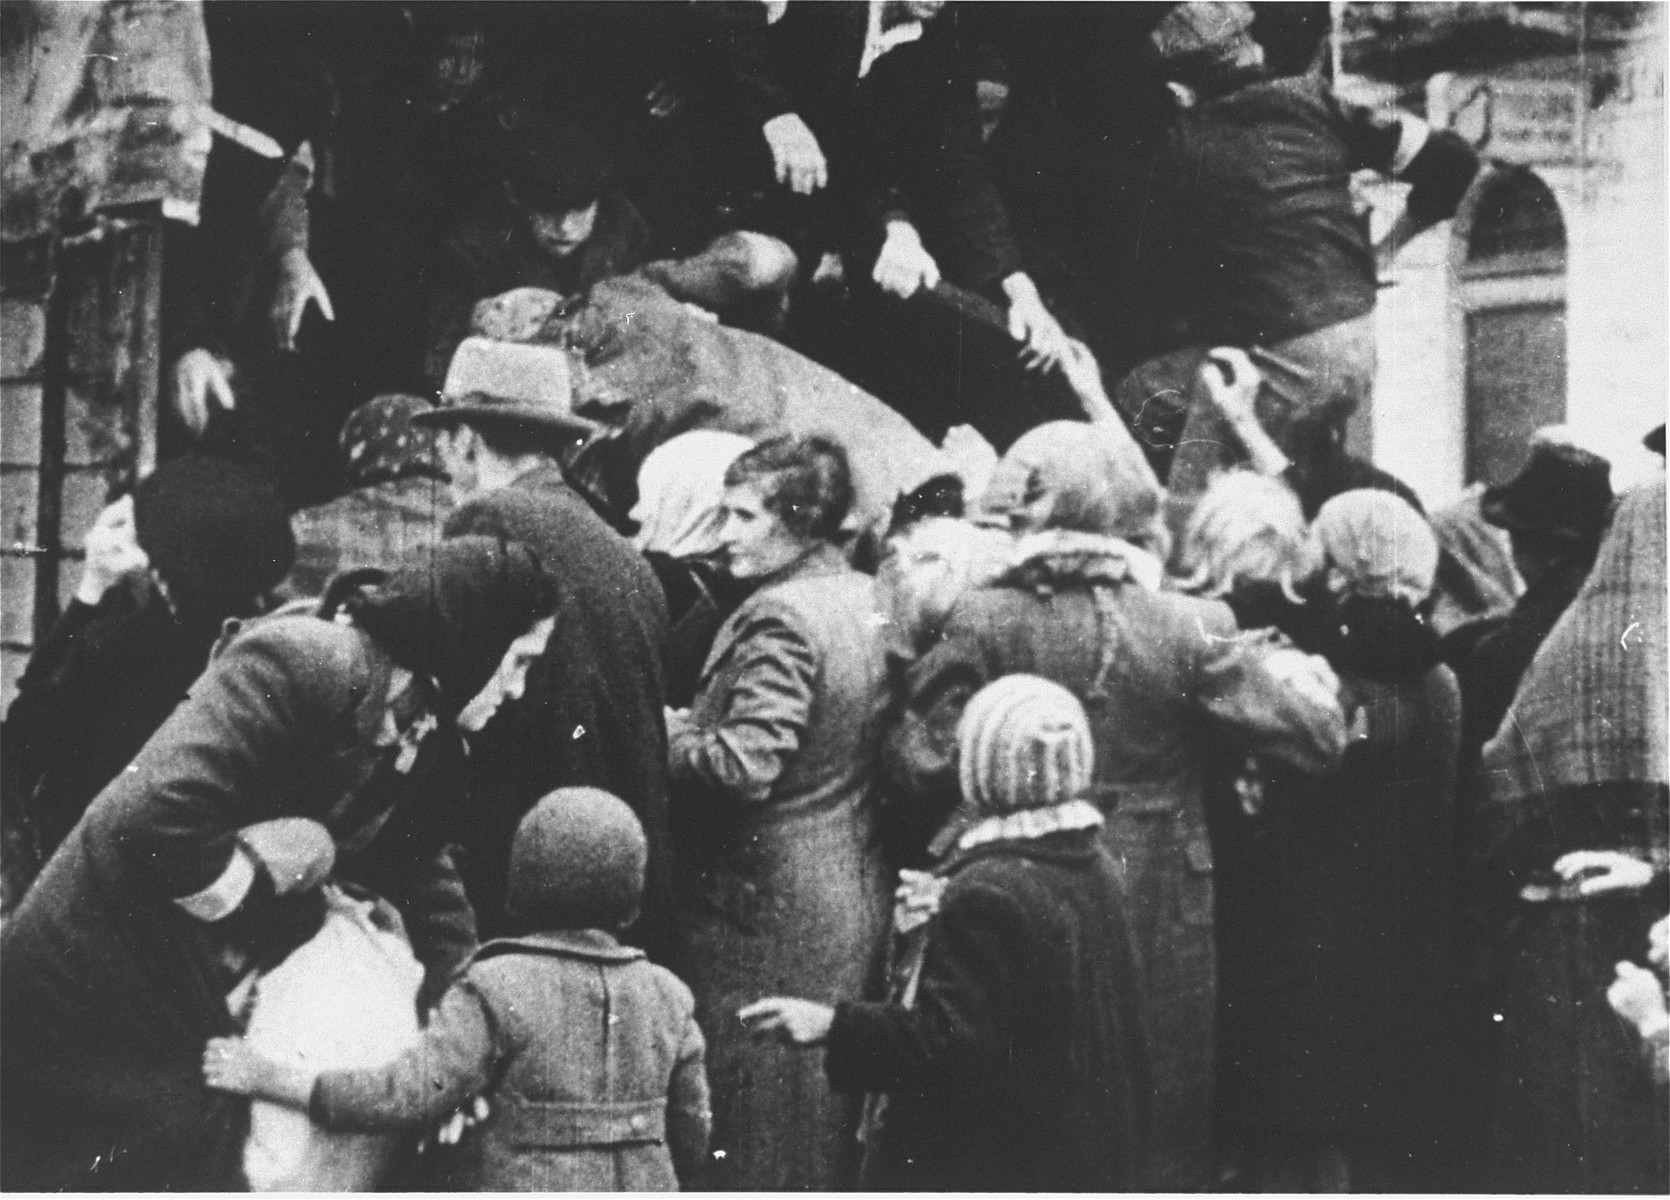 Jews captured by the SS during the suppression of the Warsaw ghetto uprising are forced to board a truck that will likely take them to a labor camp.   Most of the people captured during the ghetto uprising were deported to Treblinka, however, some were sent to either Trawniki or Poniatowa.